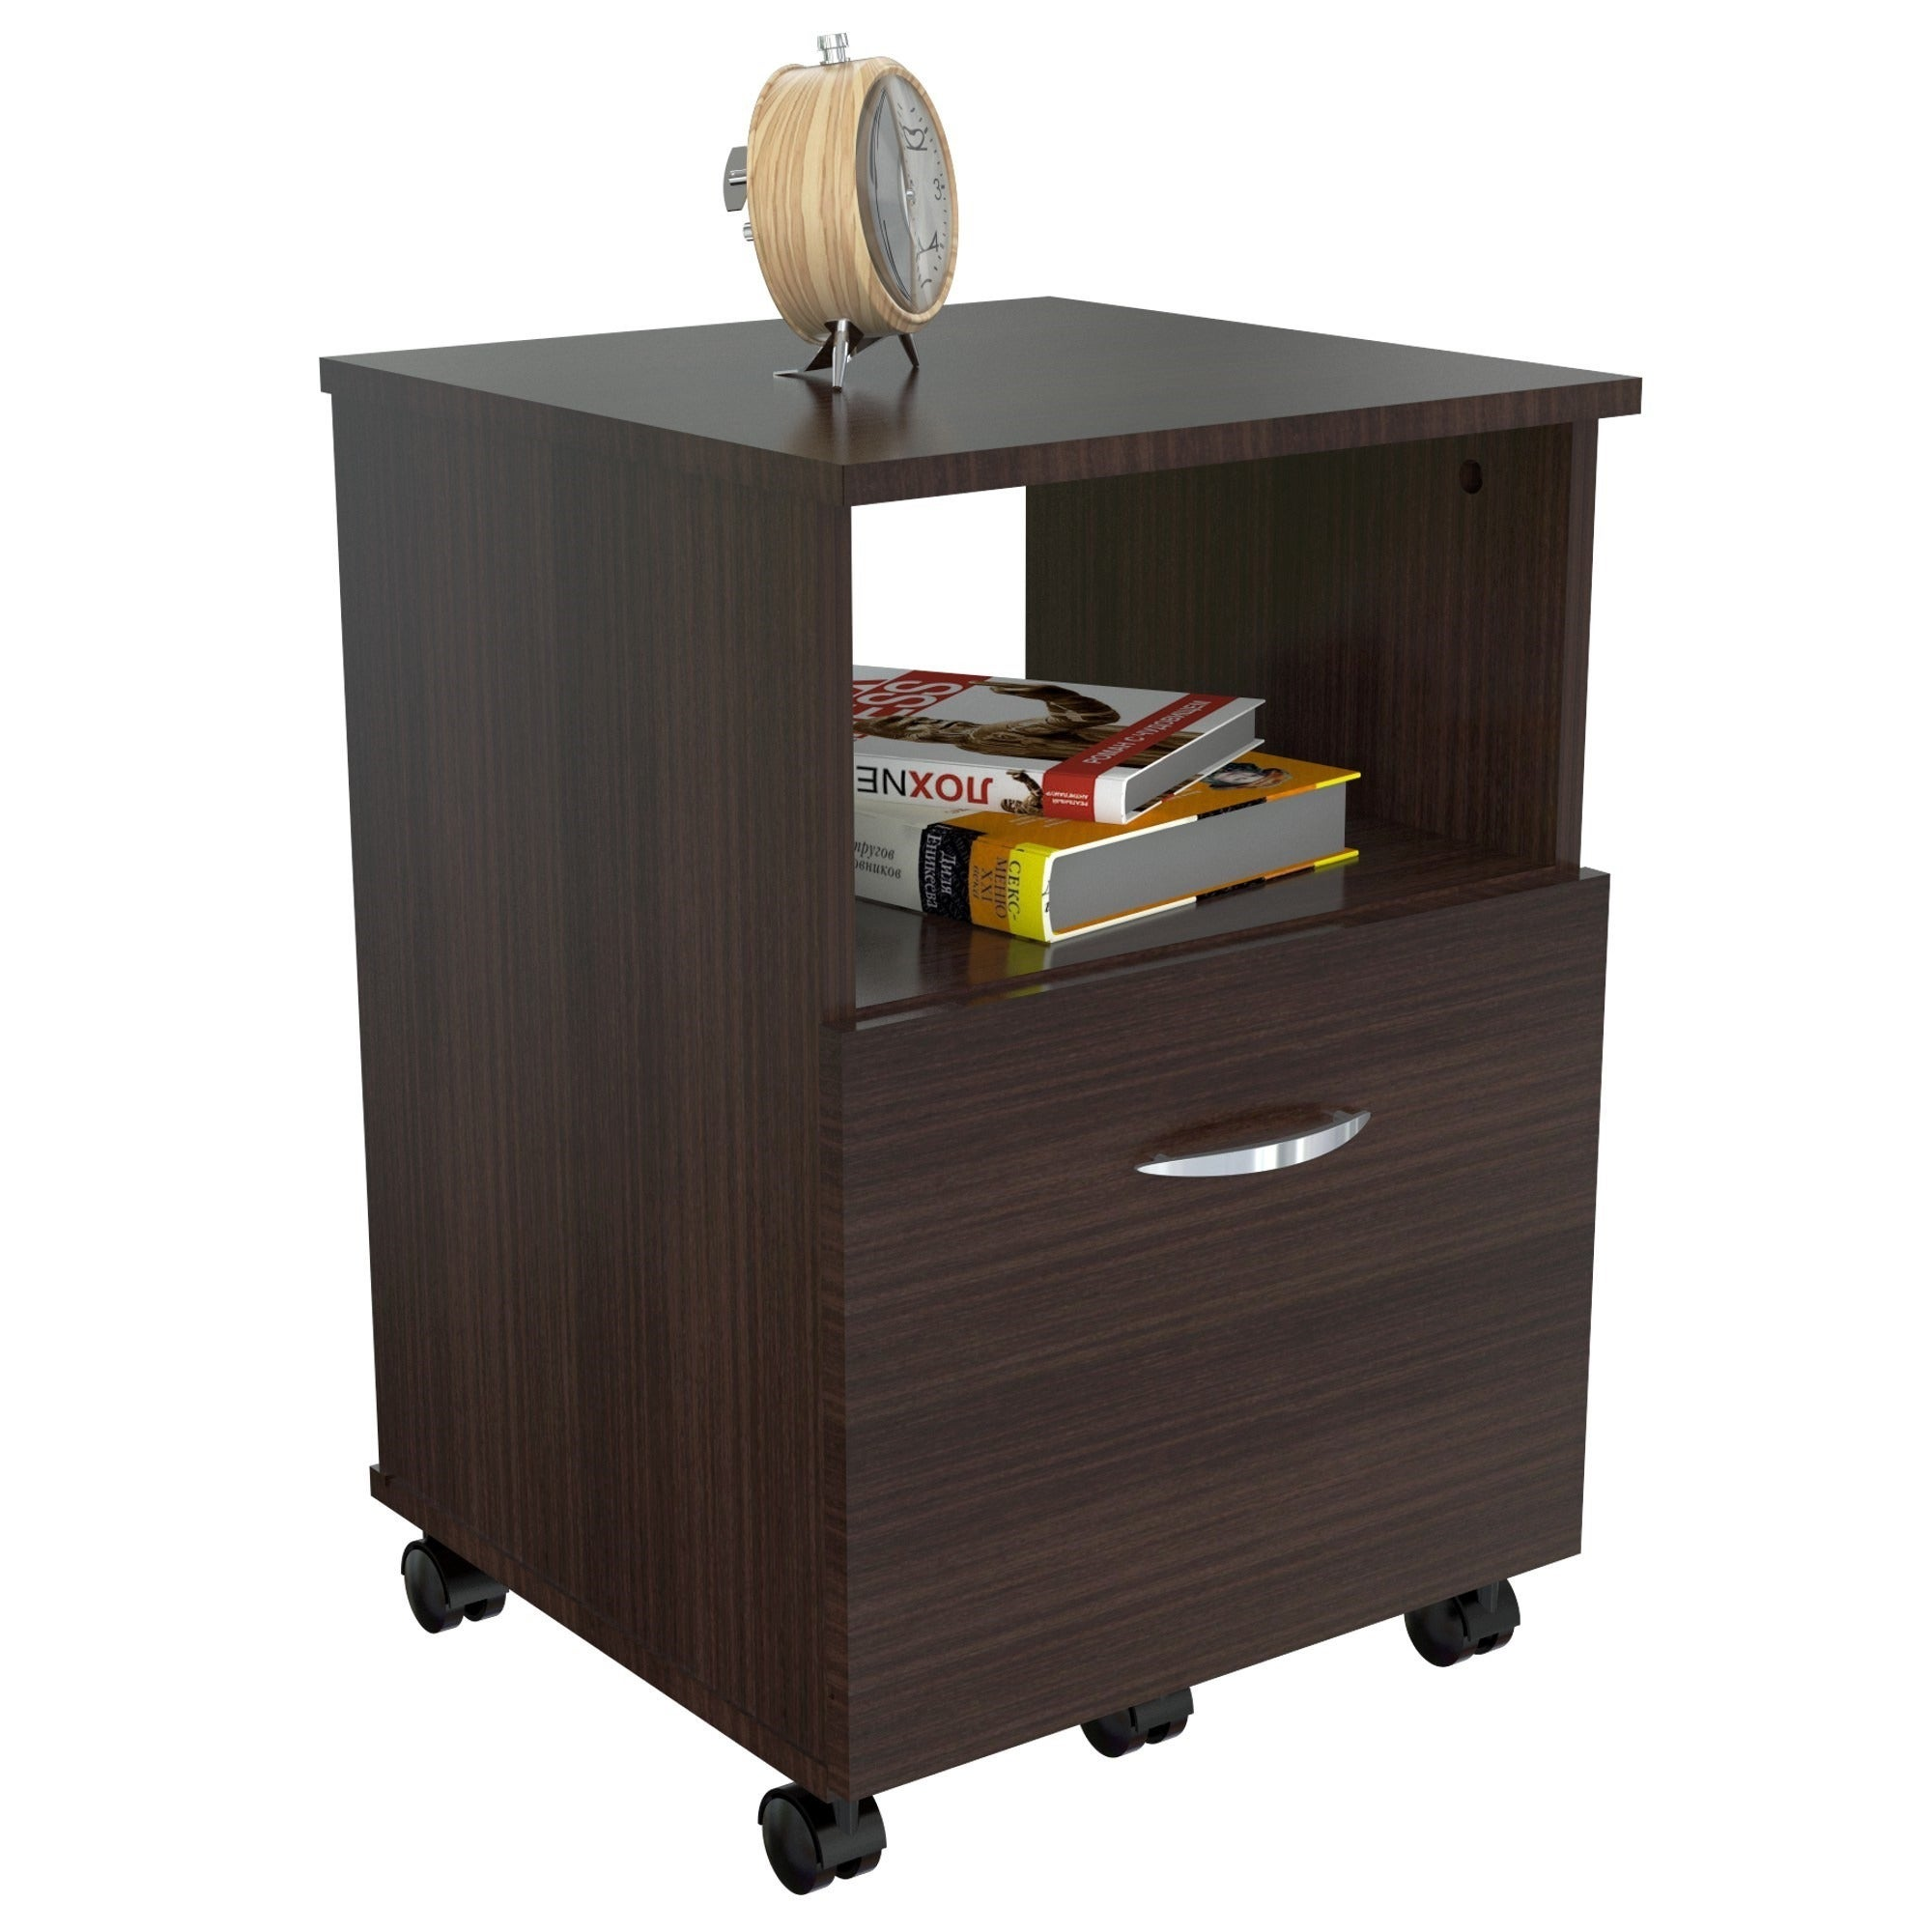 file home single target filing drawer cabinet for sale info the dimensions cabinets hrcouncil